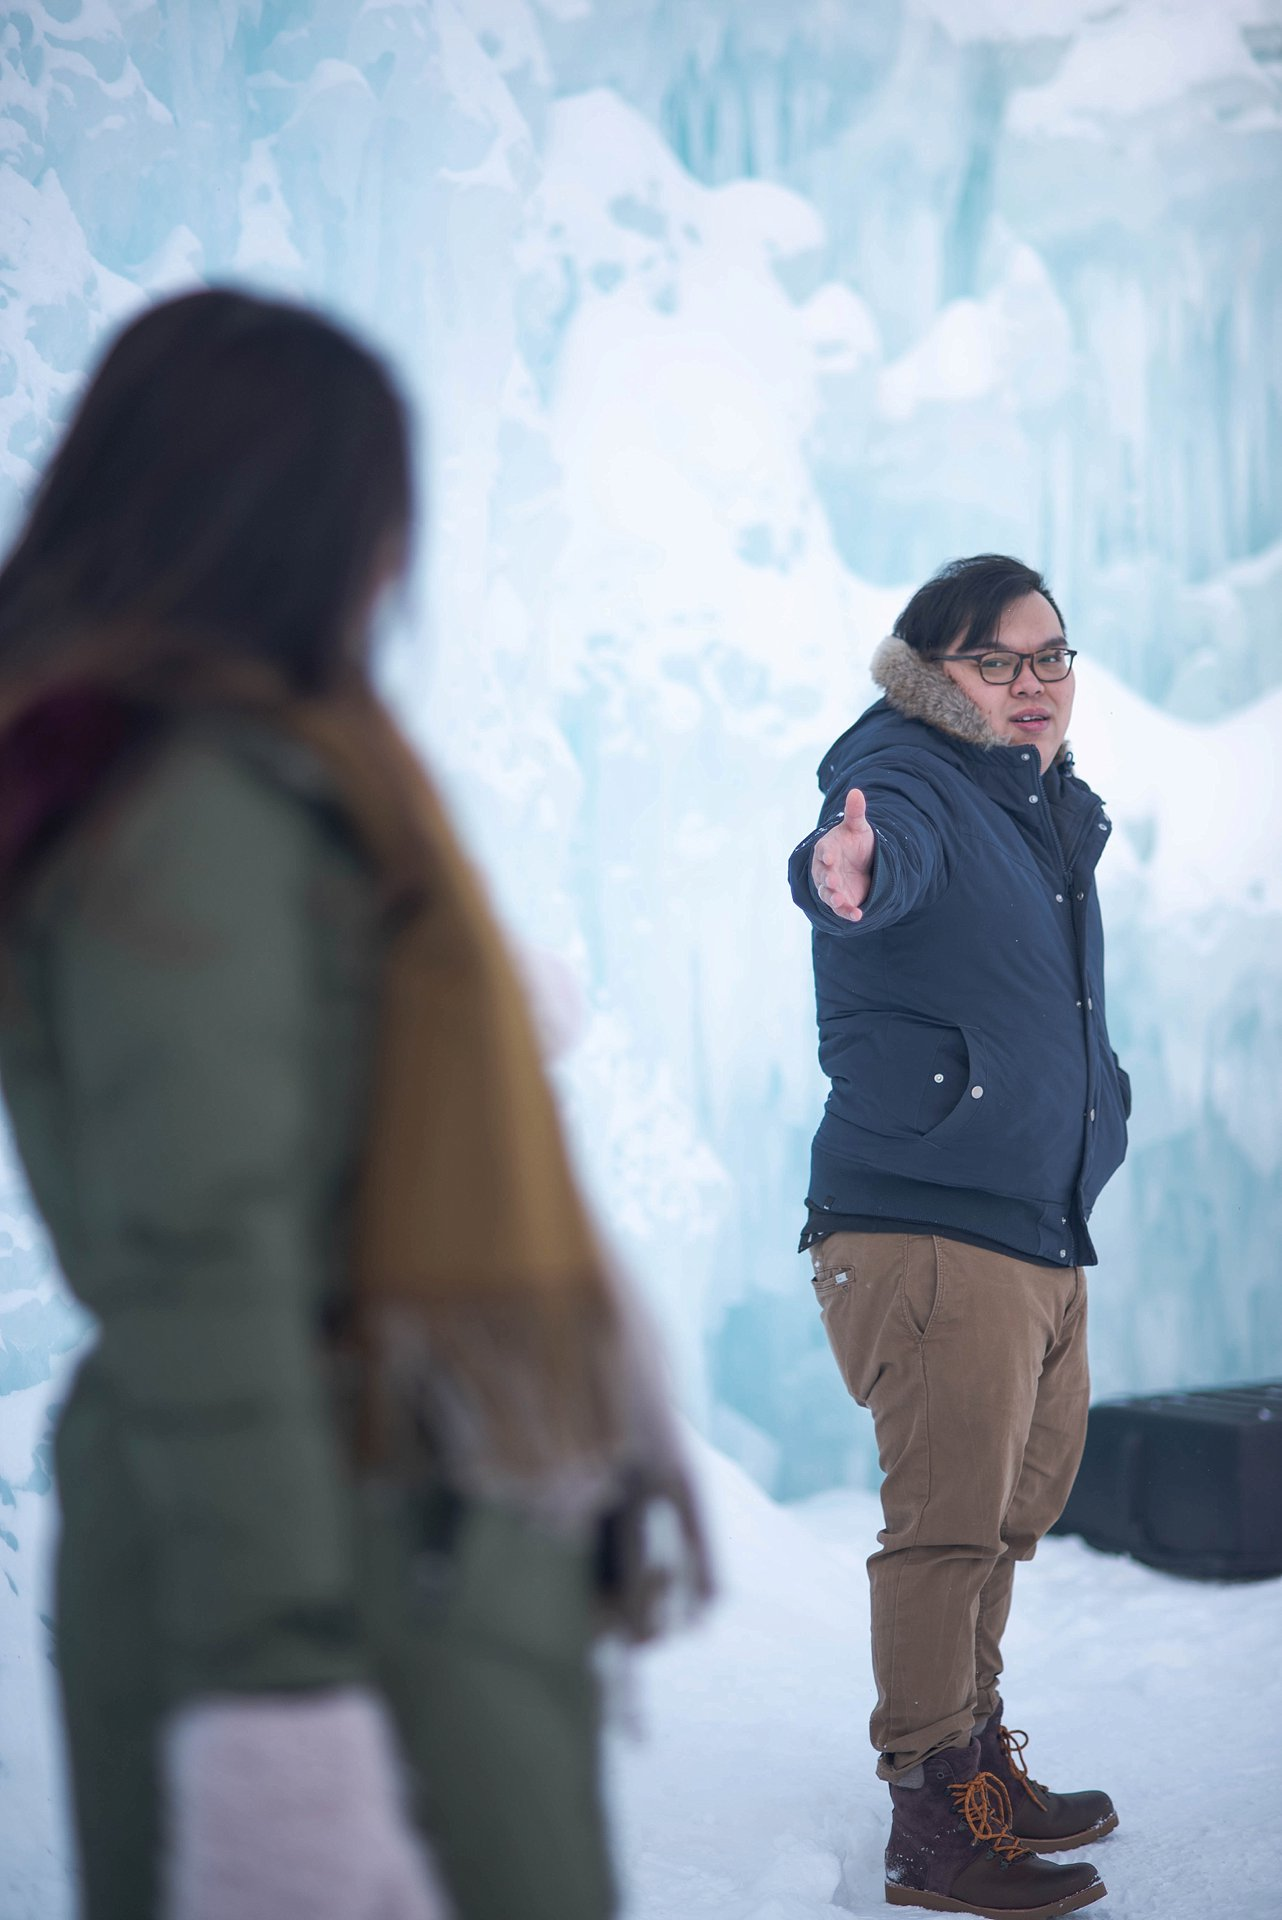 VJ-Ice-castles-engagement-photography_0003